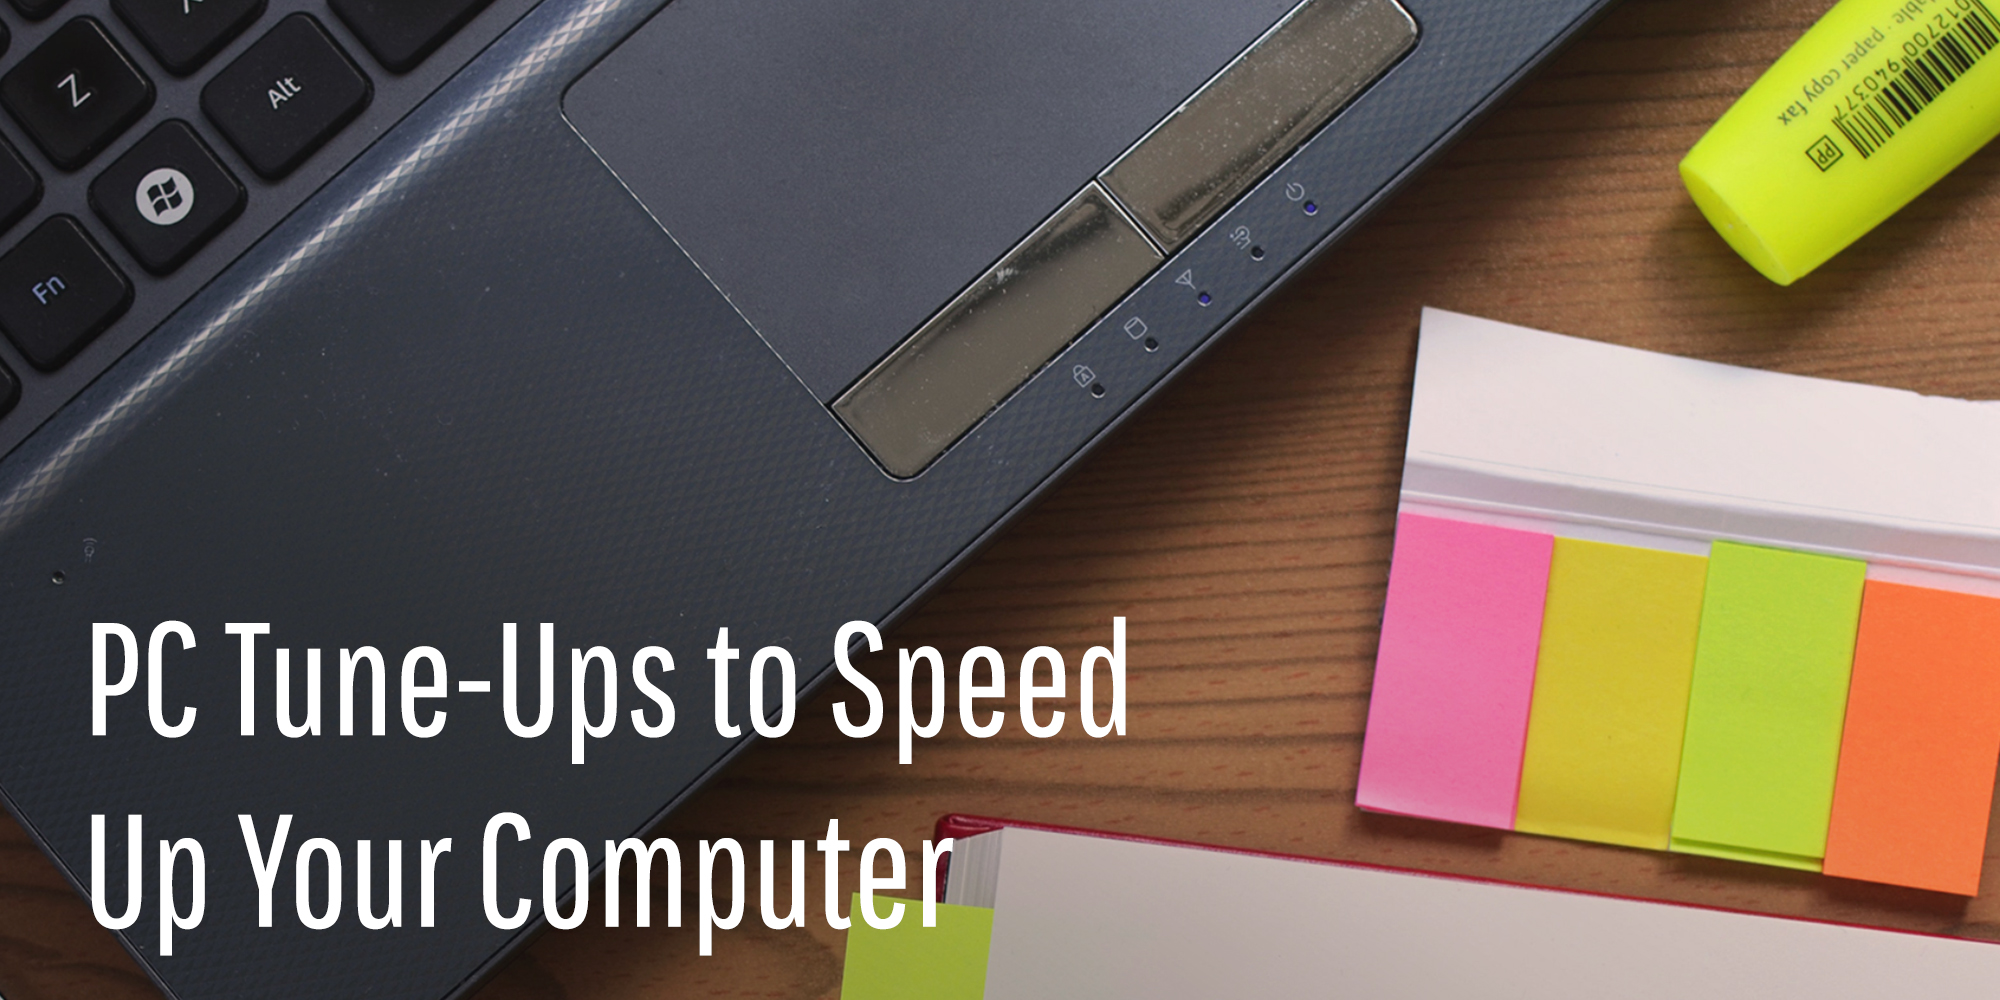 PC Tune-Ups To Speed Up Your Computer